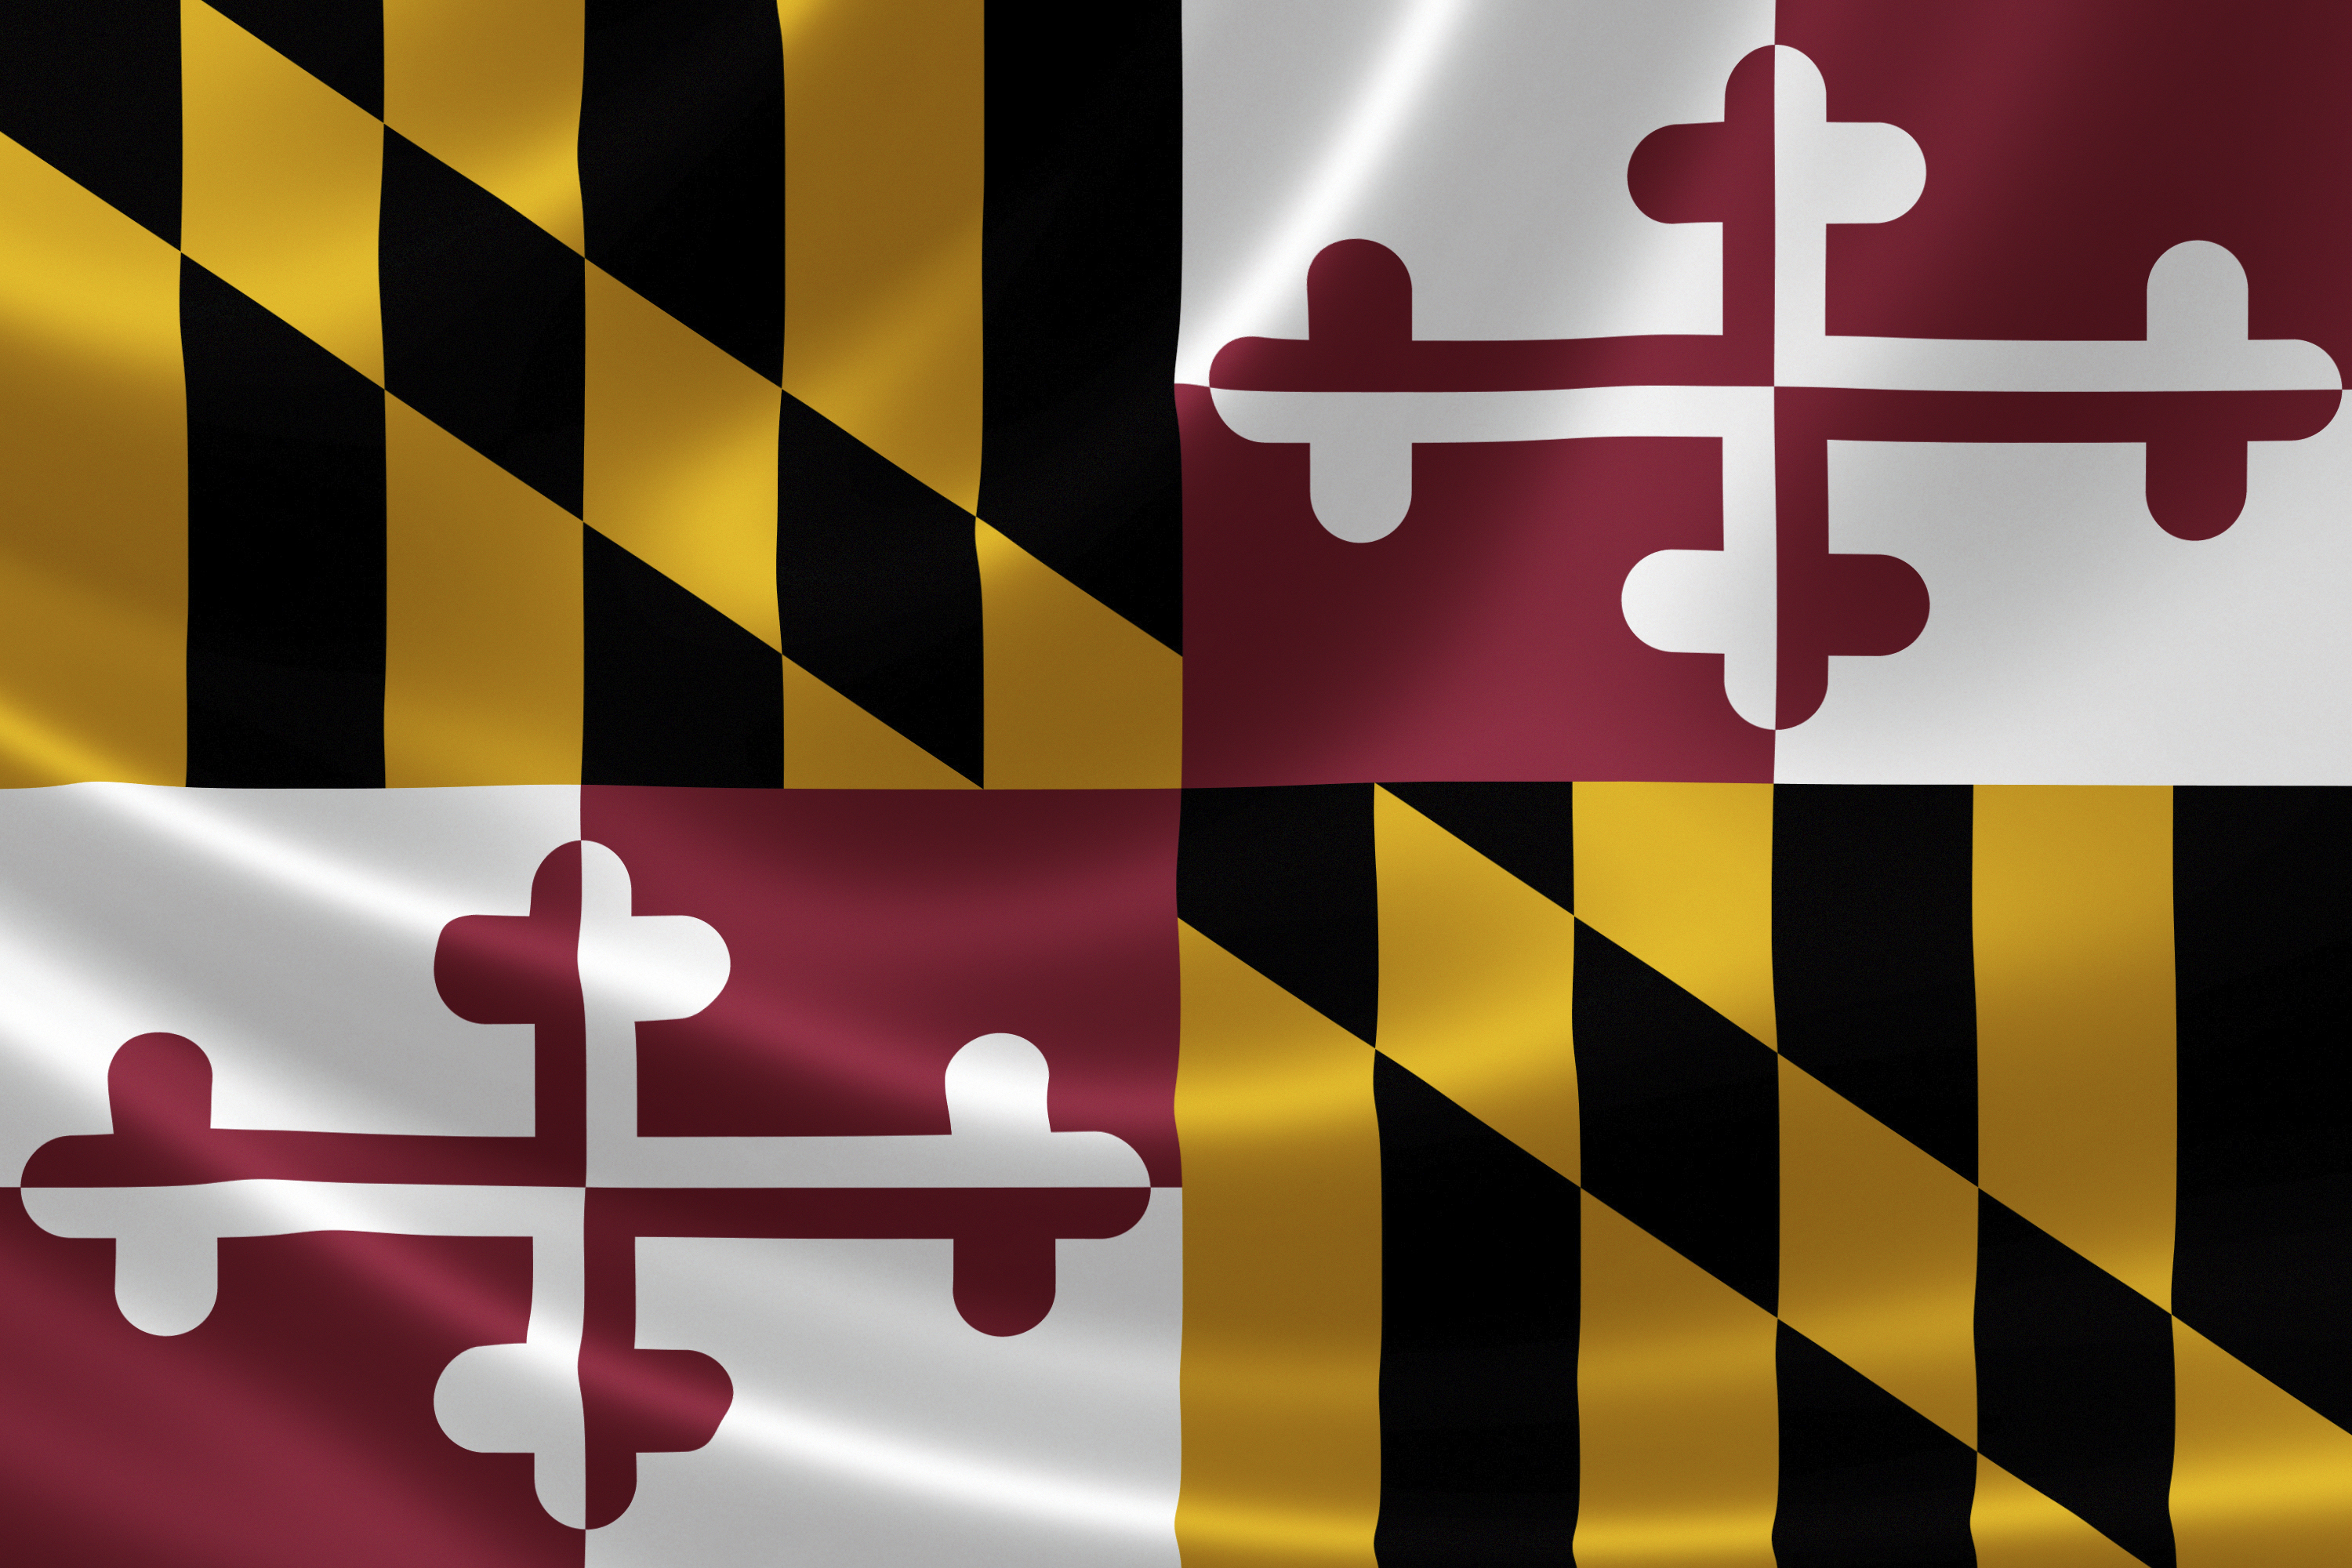 Md.'s state song stirs debate among lawmakers